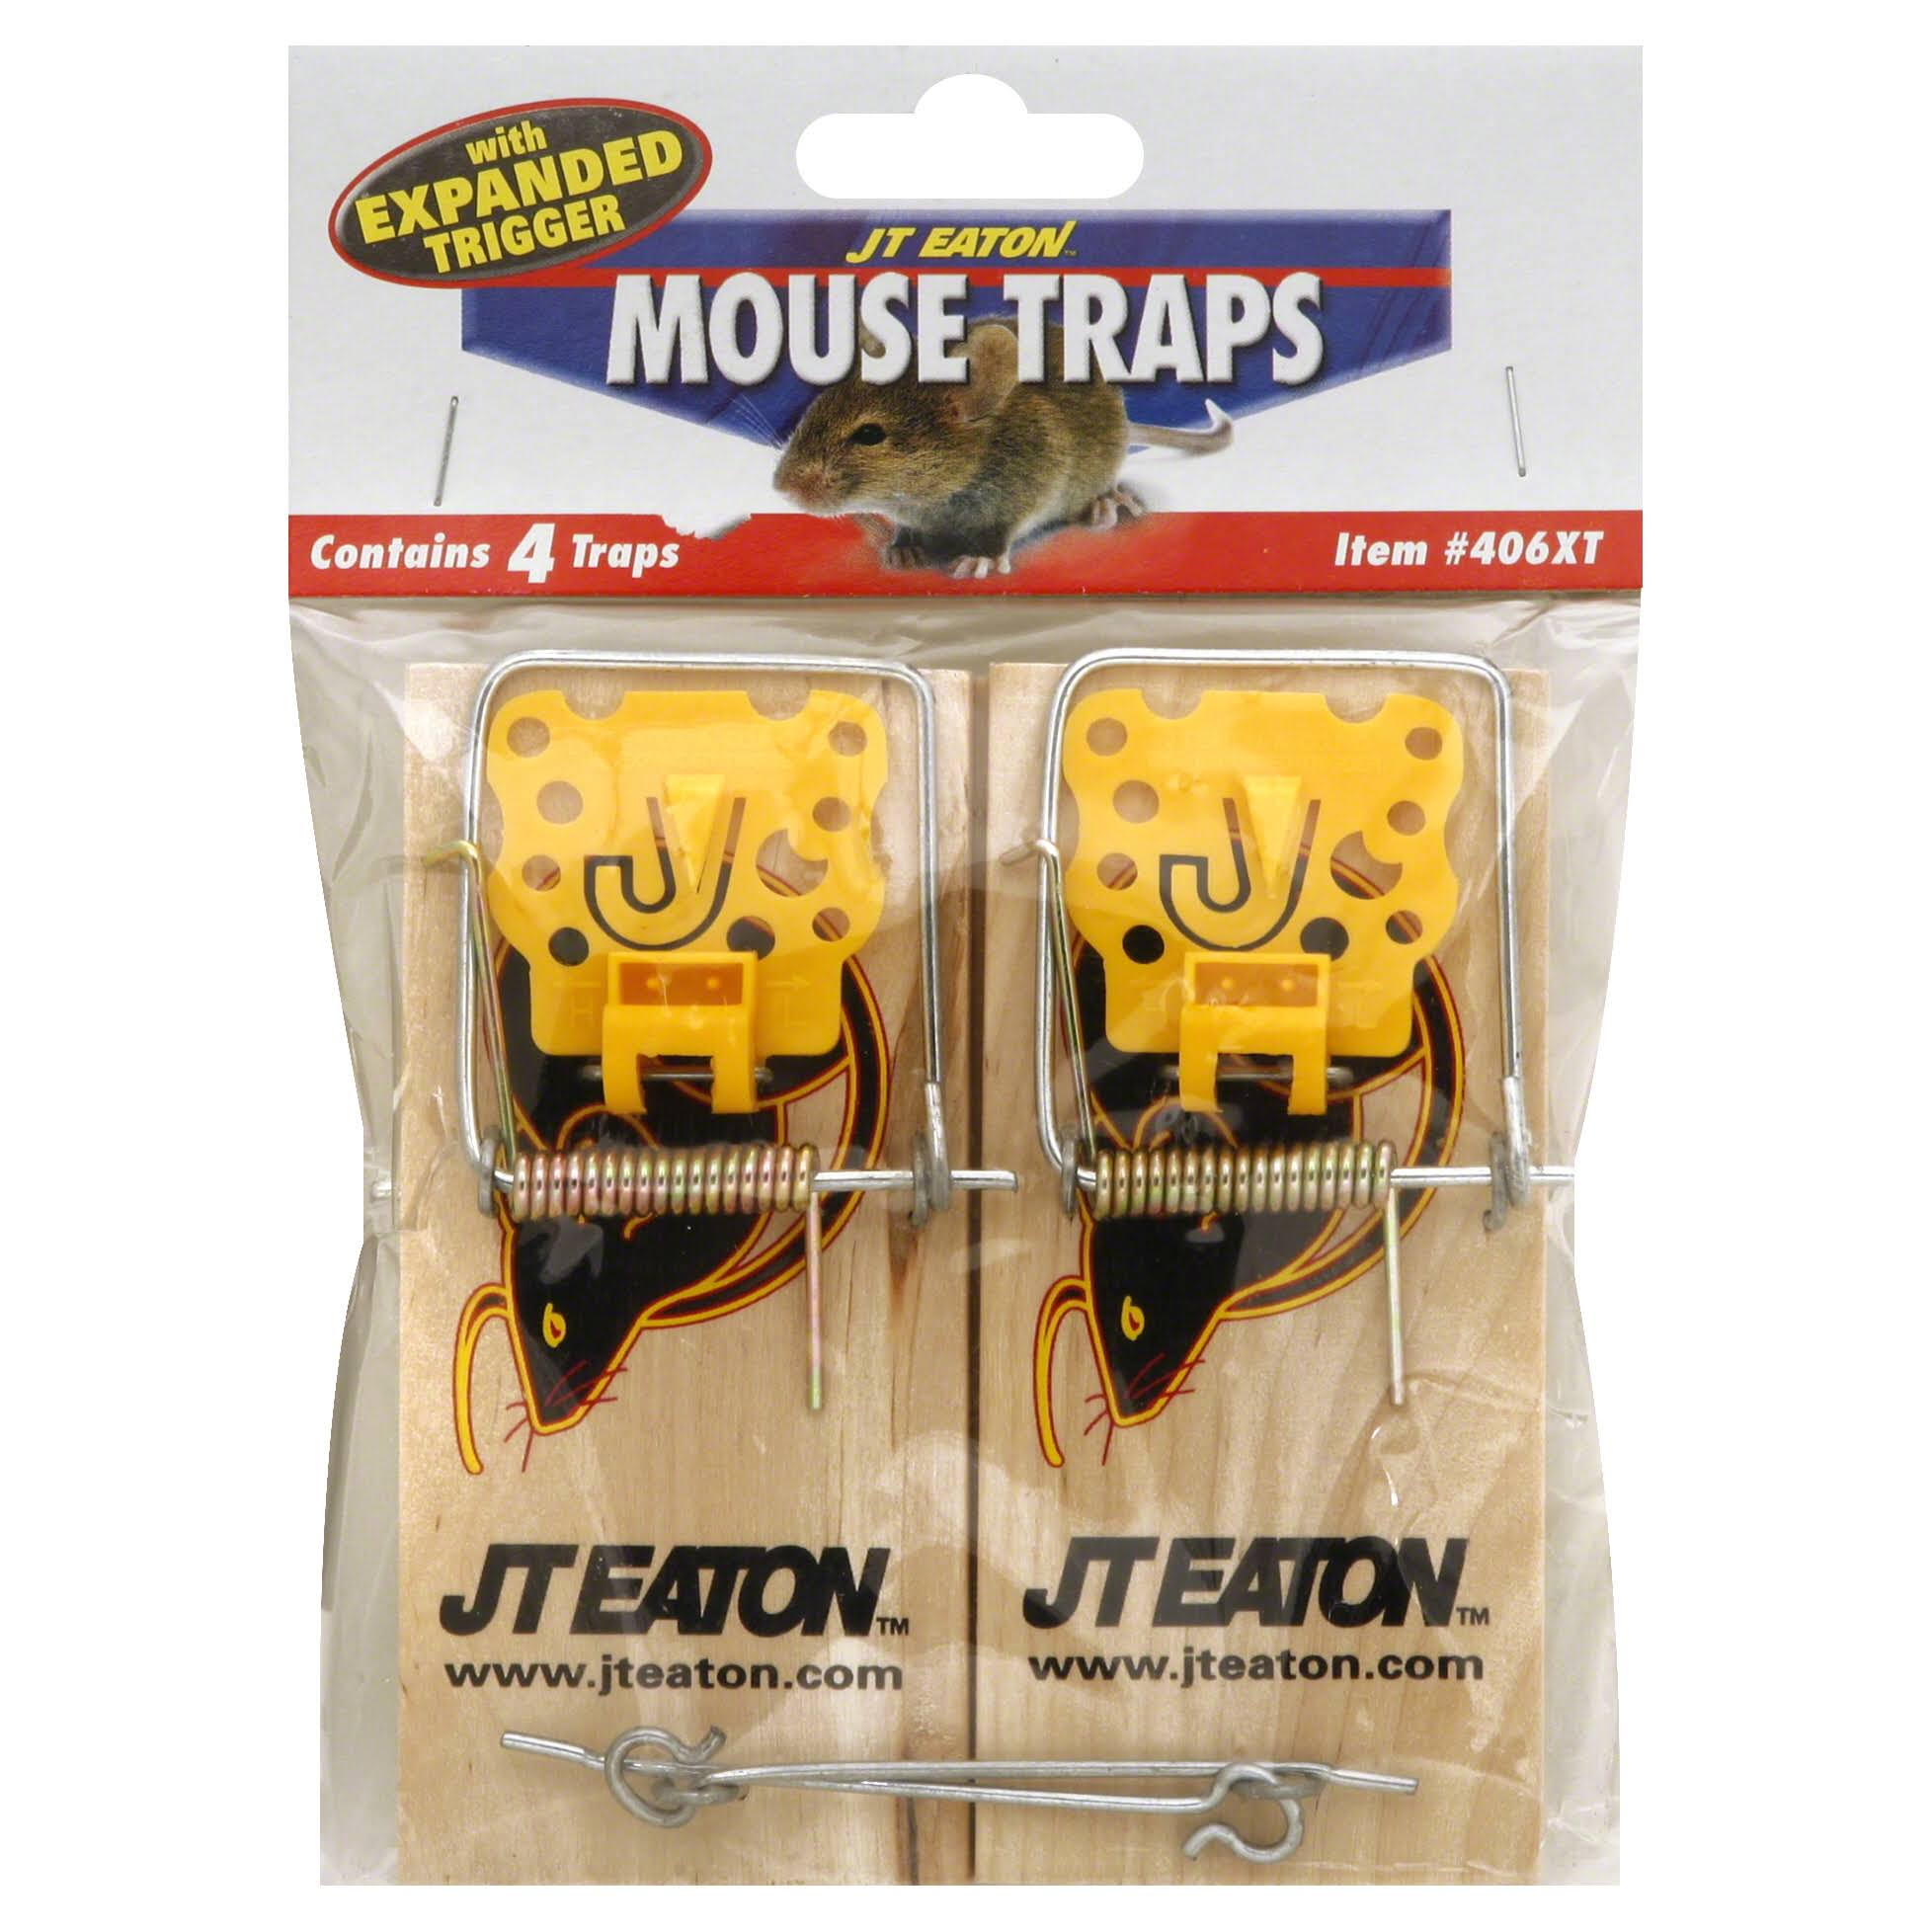 JT Eaton Mouse Traps with Expanded Trigger - 4 traps